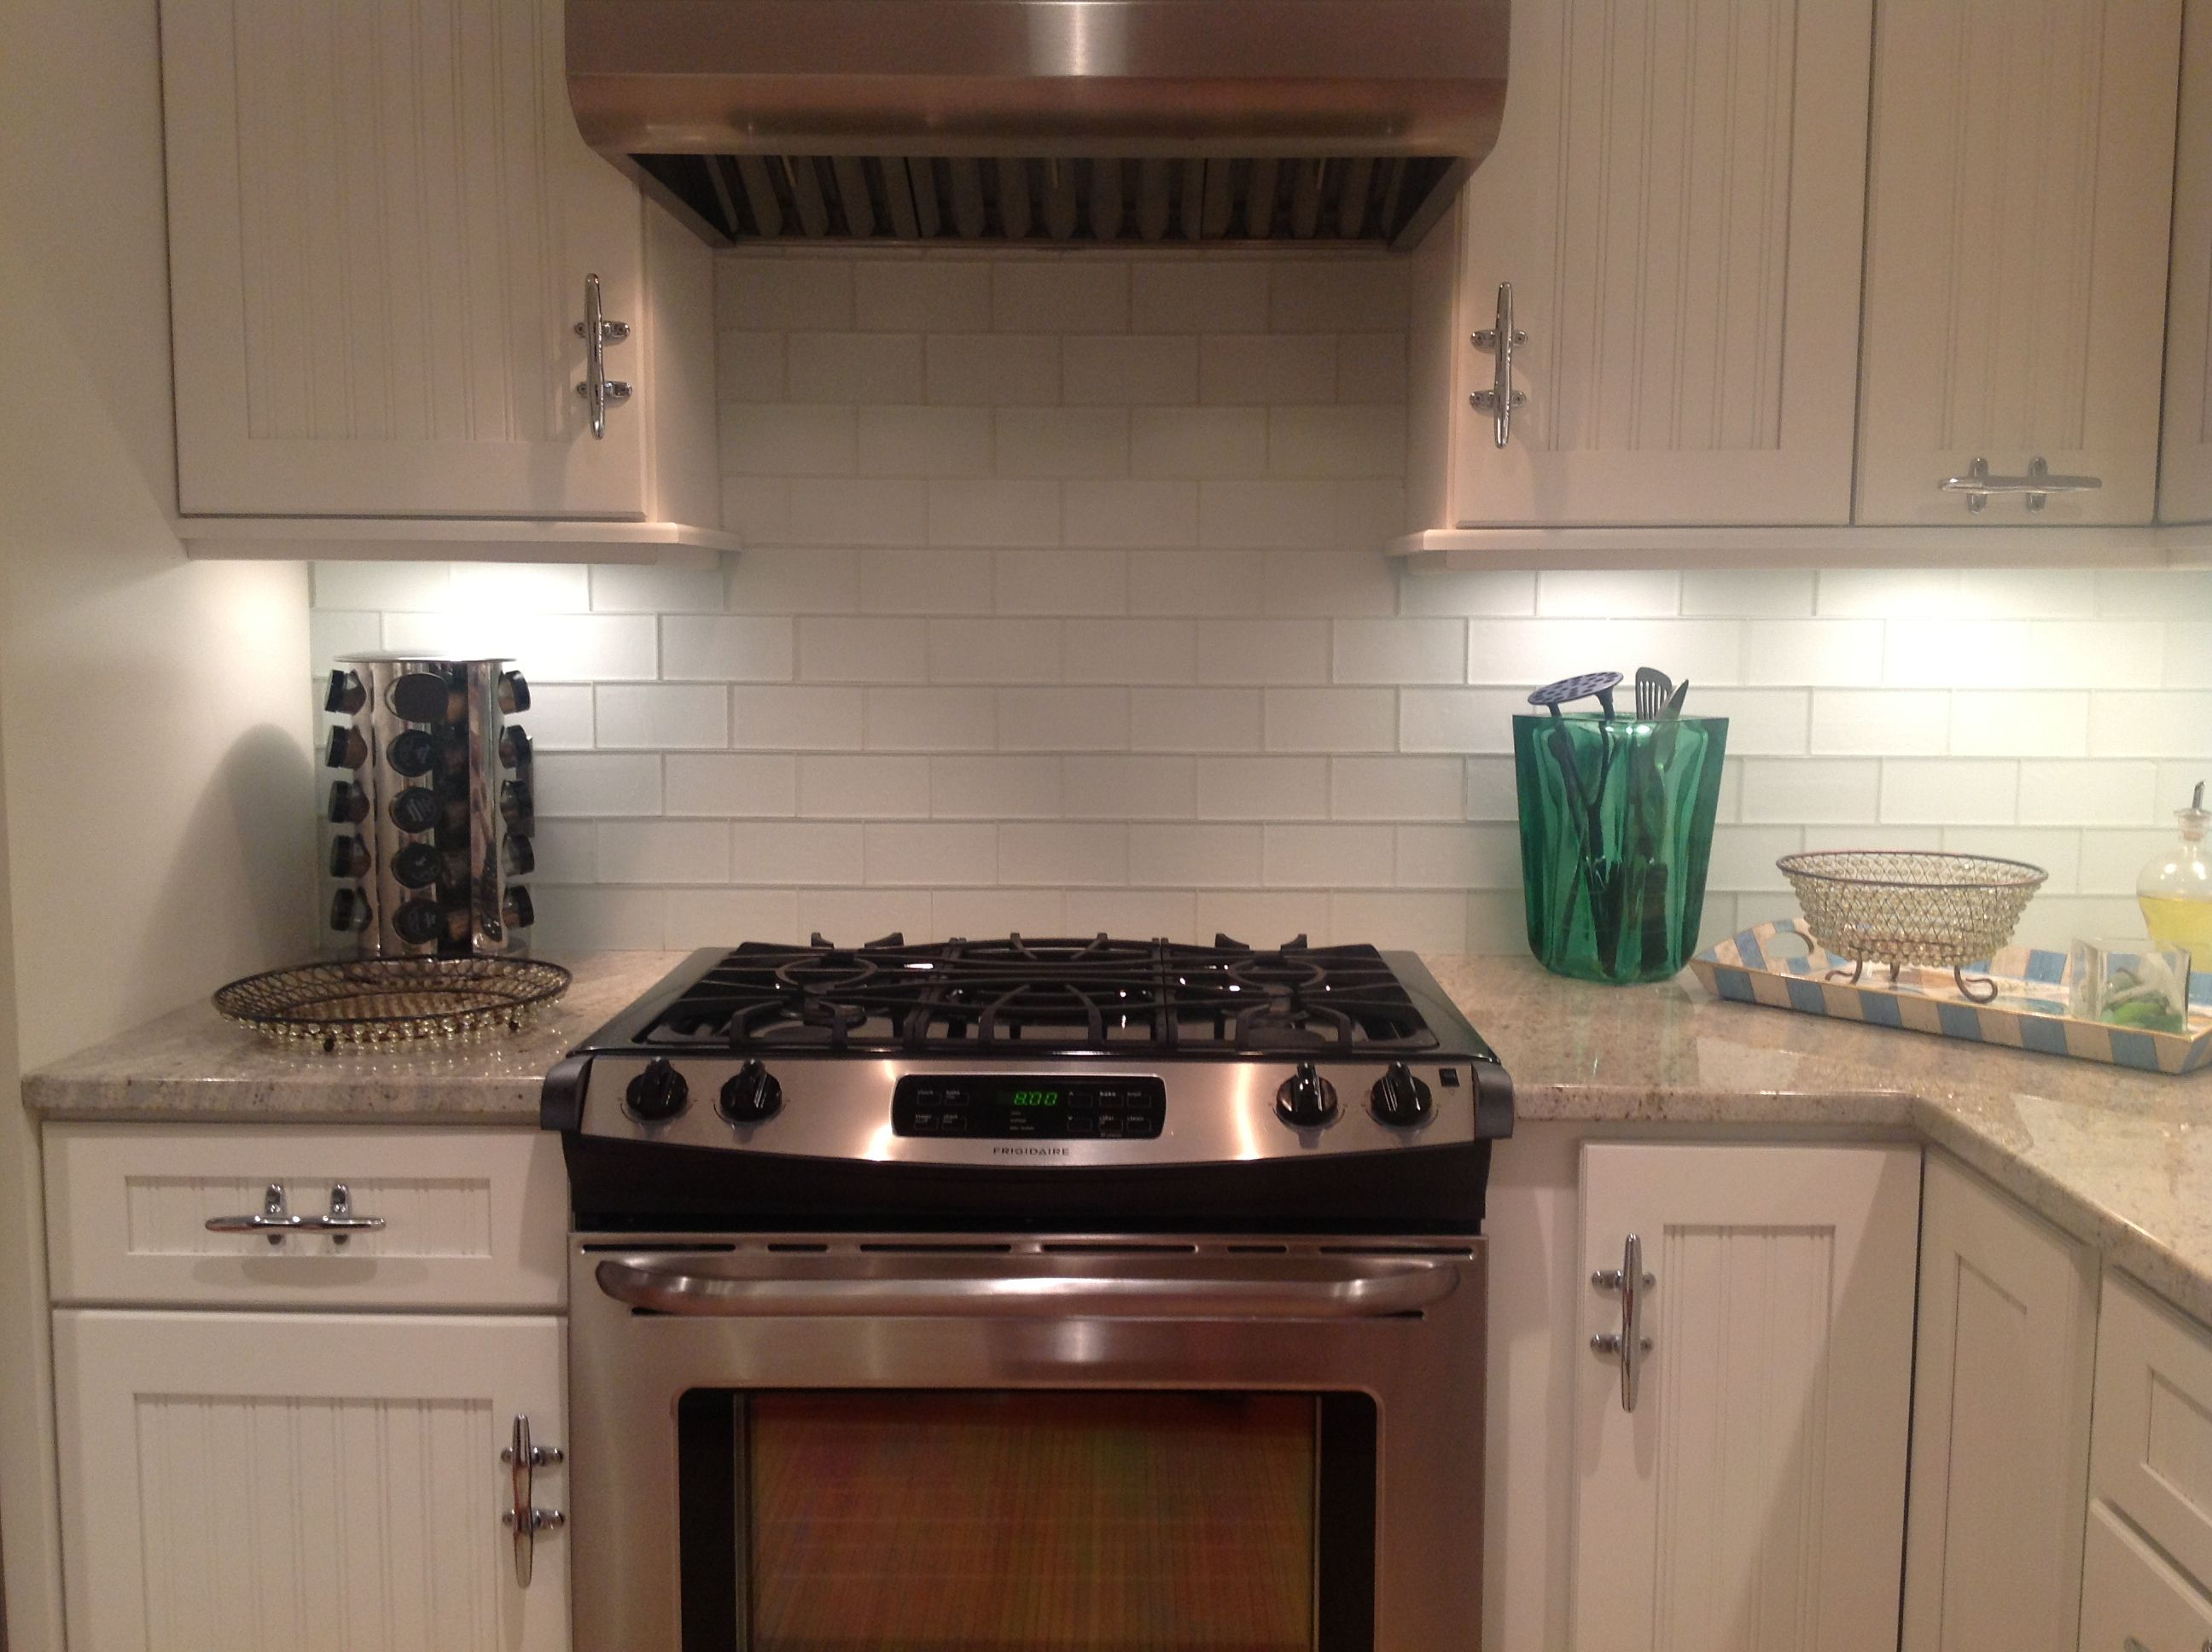 Uncategorized Tiles And Backsplash For Kitchens frosted white glass subway tile tiles kitchen backsplash tile